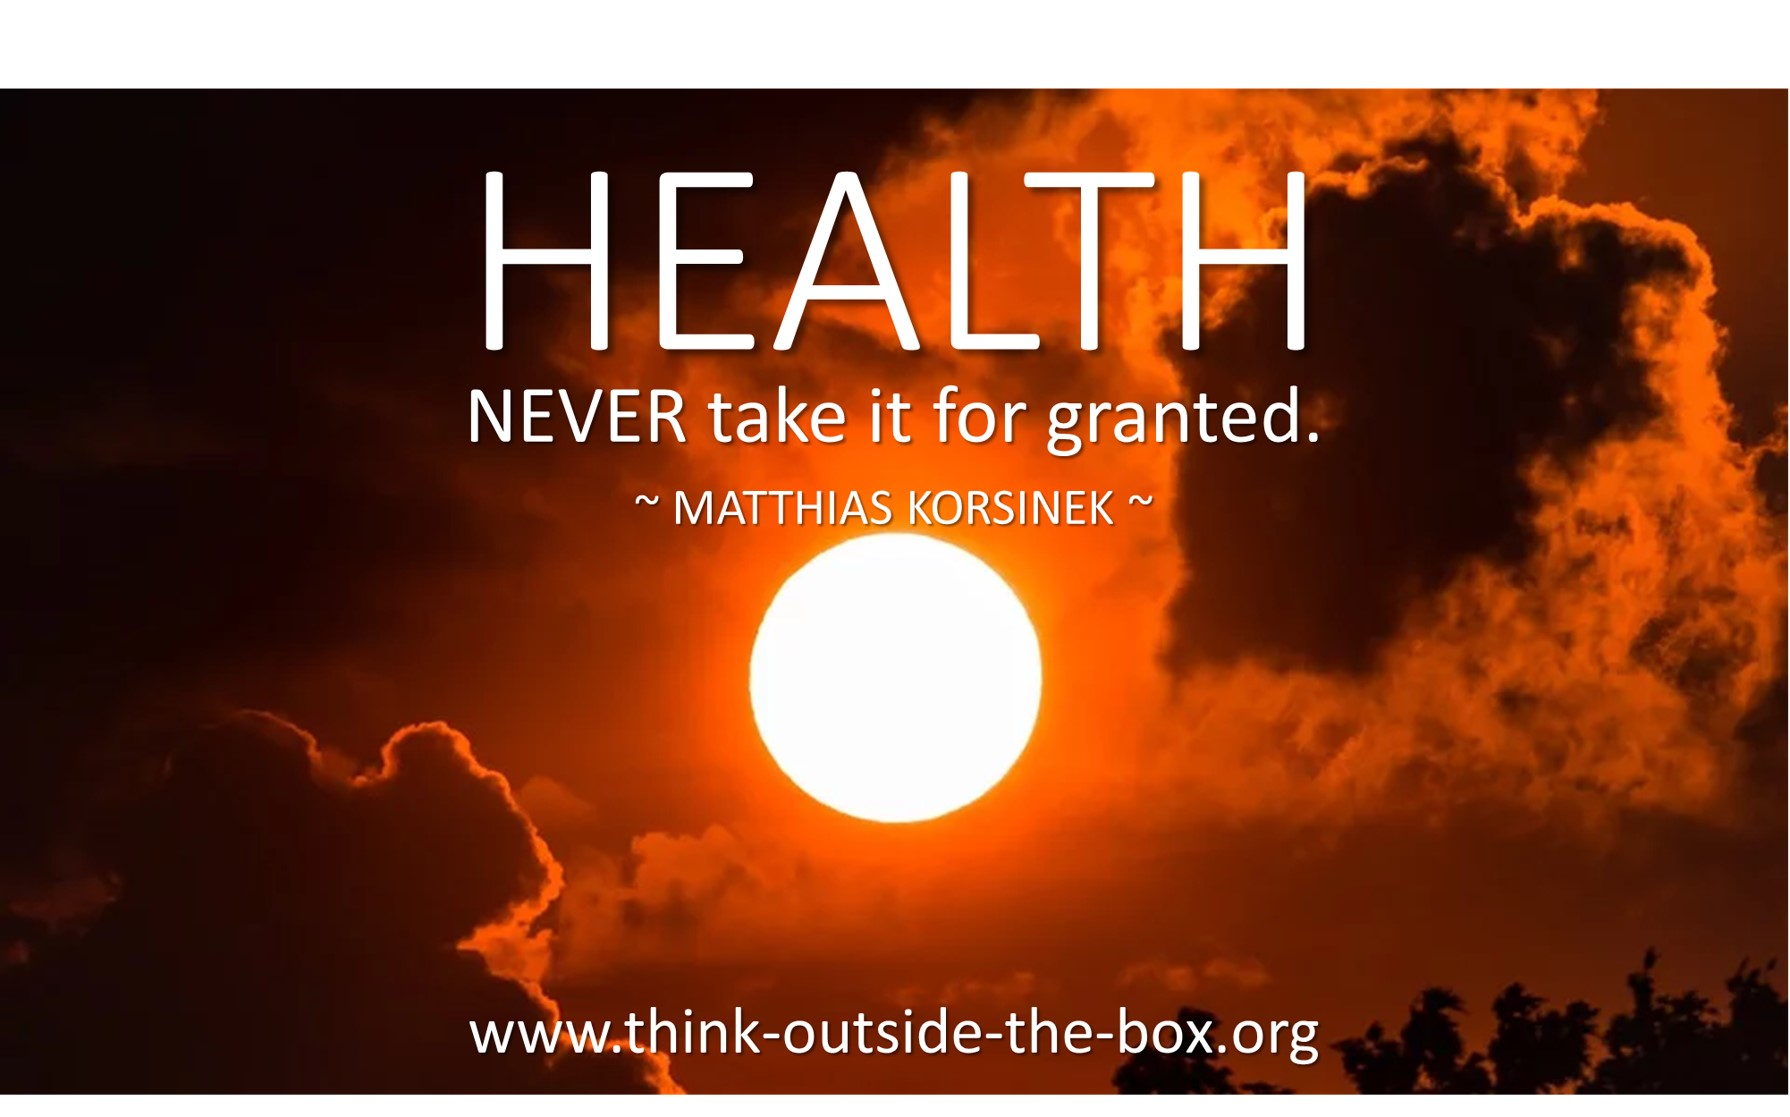 HEALTH never take it for granted